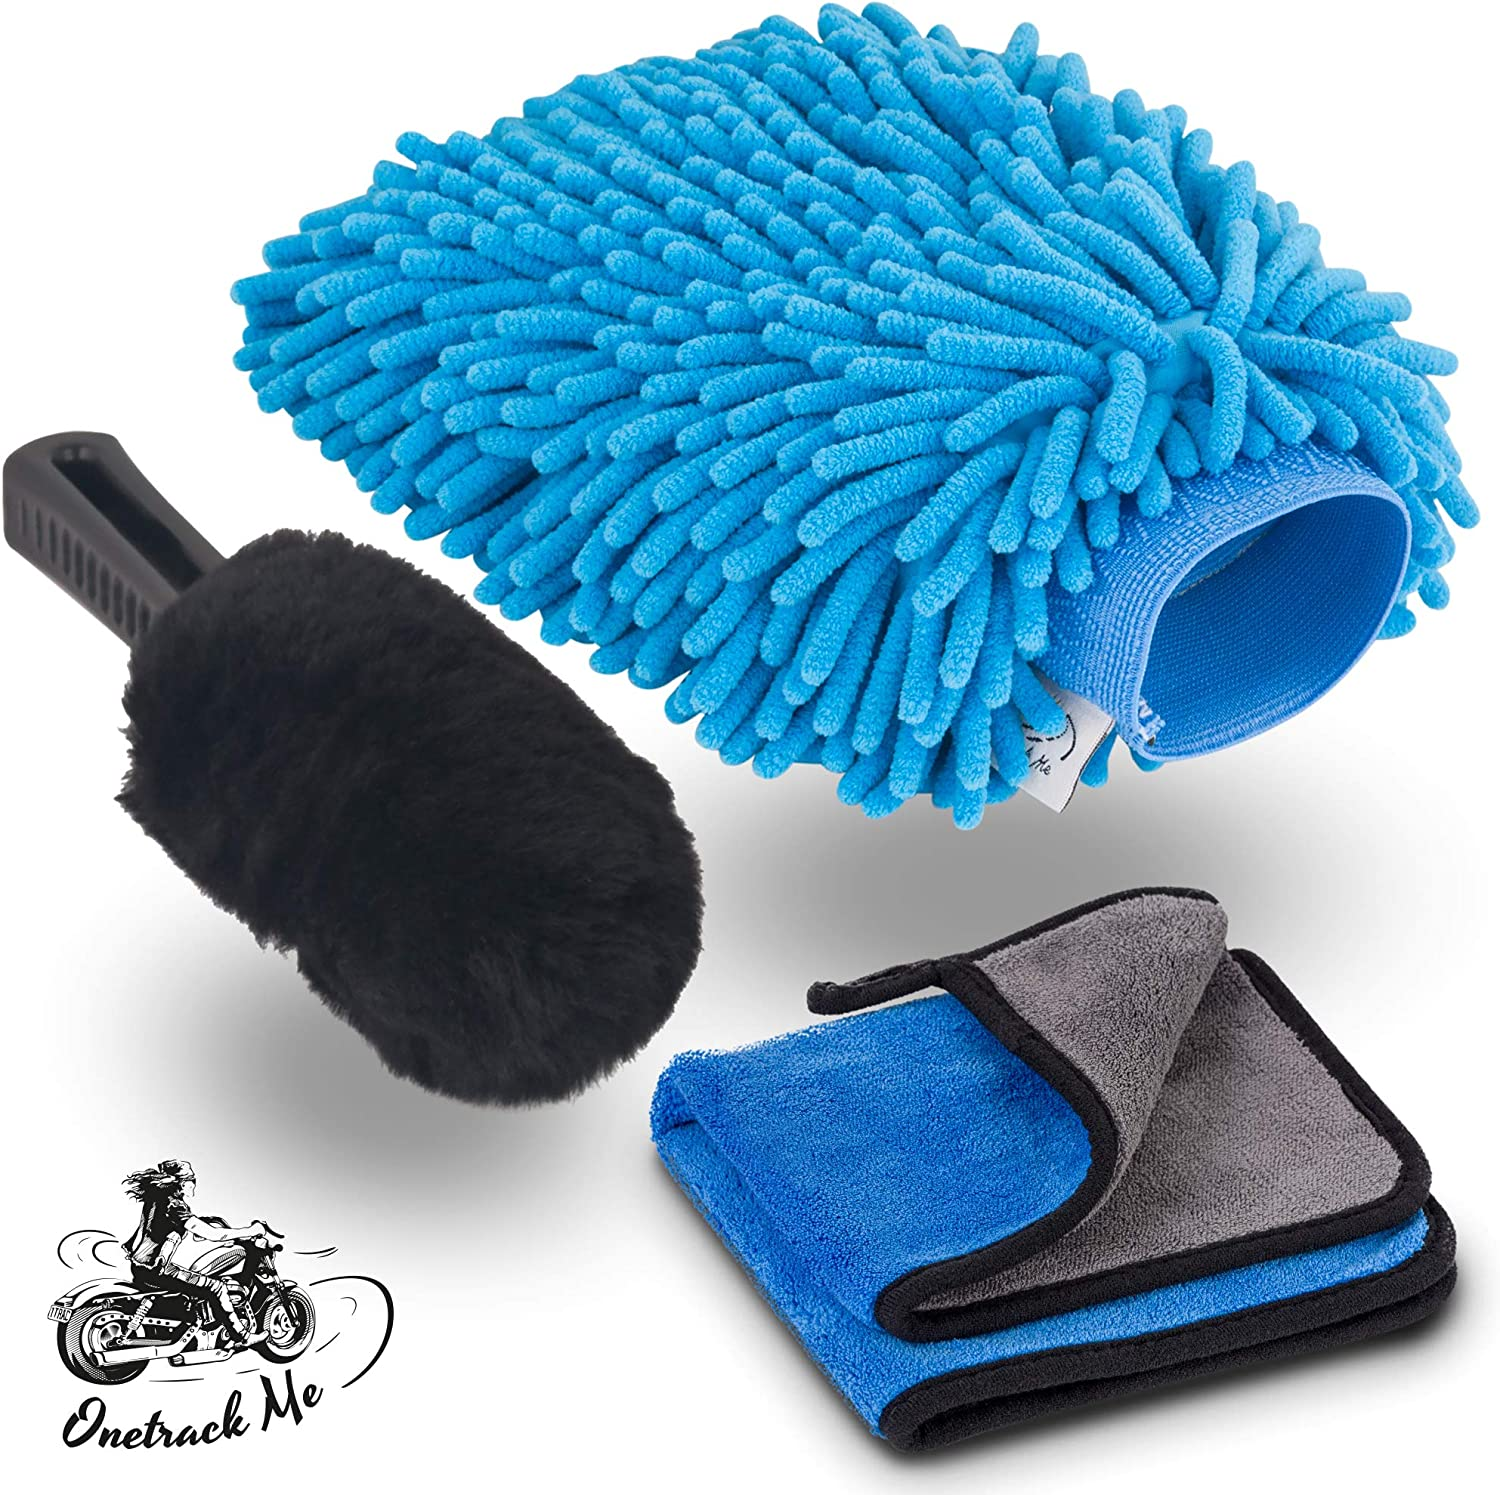 Car Wash Cleaning Glove Motorcycle Microfiber Washer Brush Cleaning Care Kits